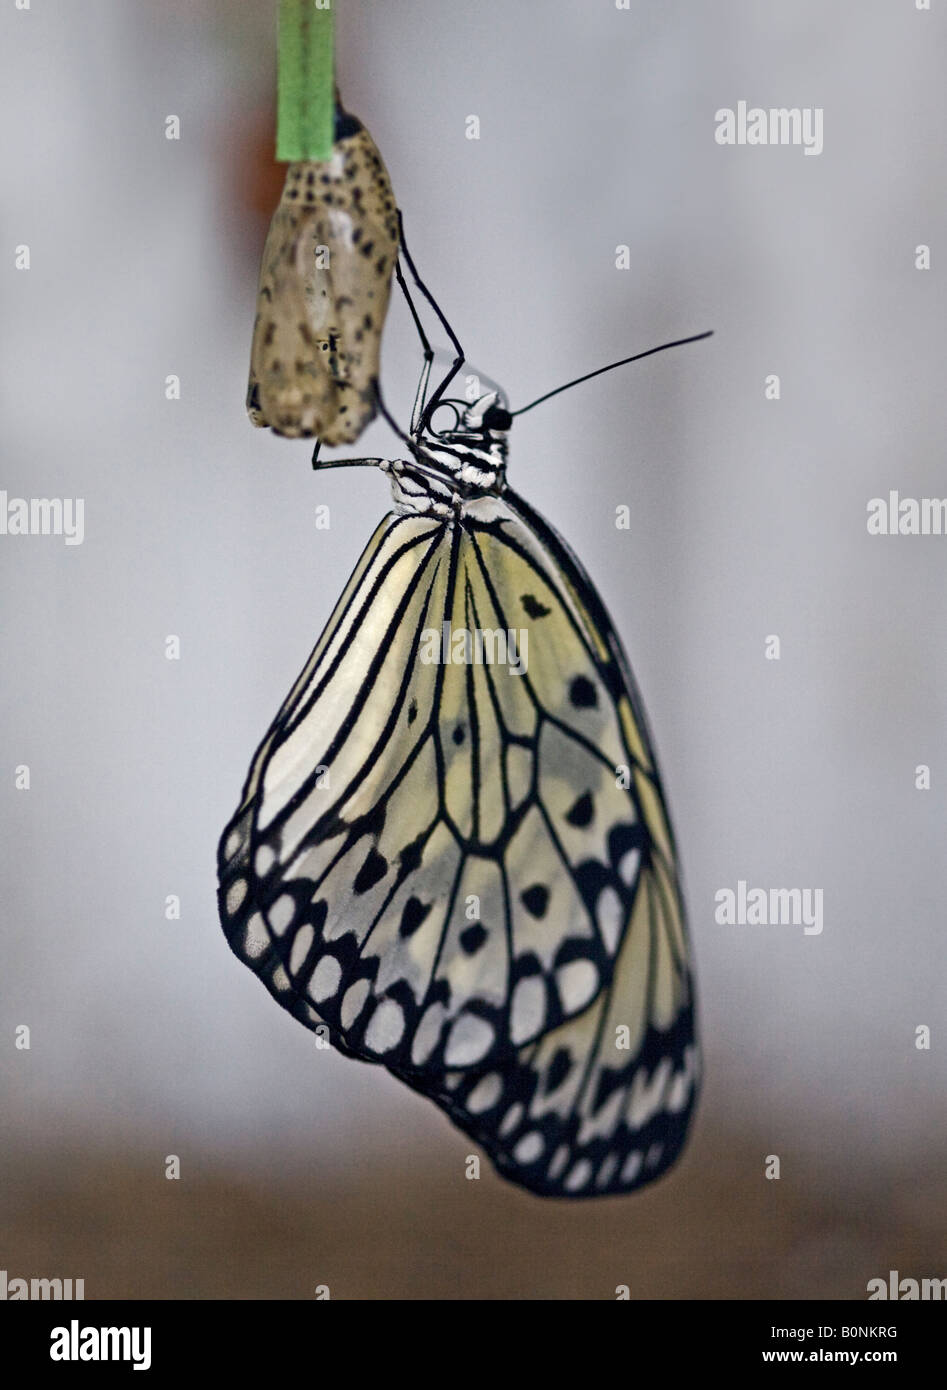 Rice Paper Butterfly (idea leuconoe) and Cocoon (also known as a Paper Kite or Tree Nymph Butterfly) - Stock Image